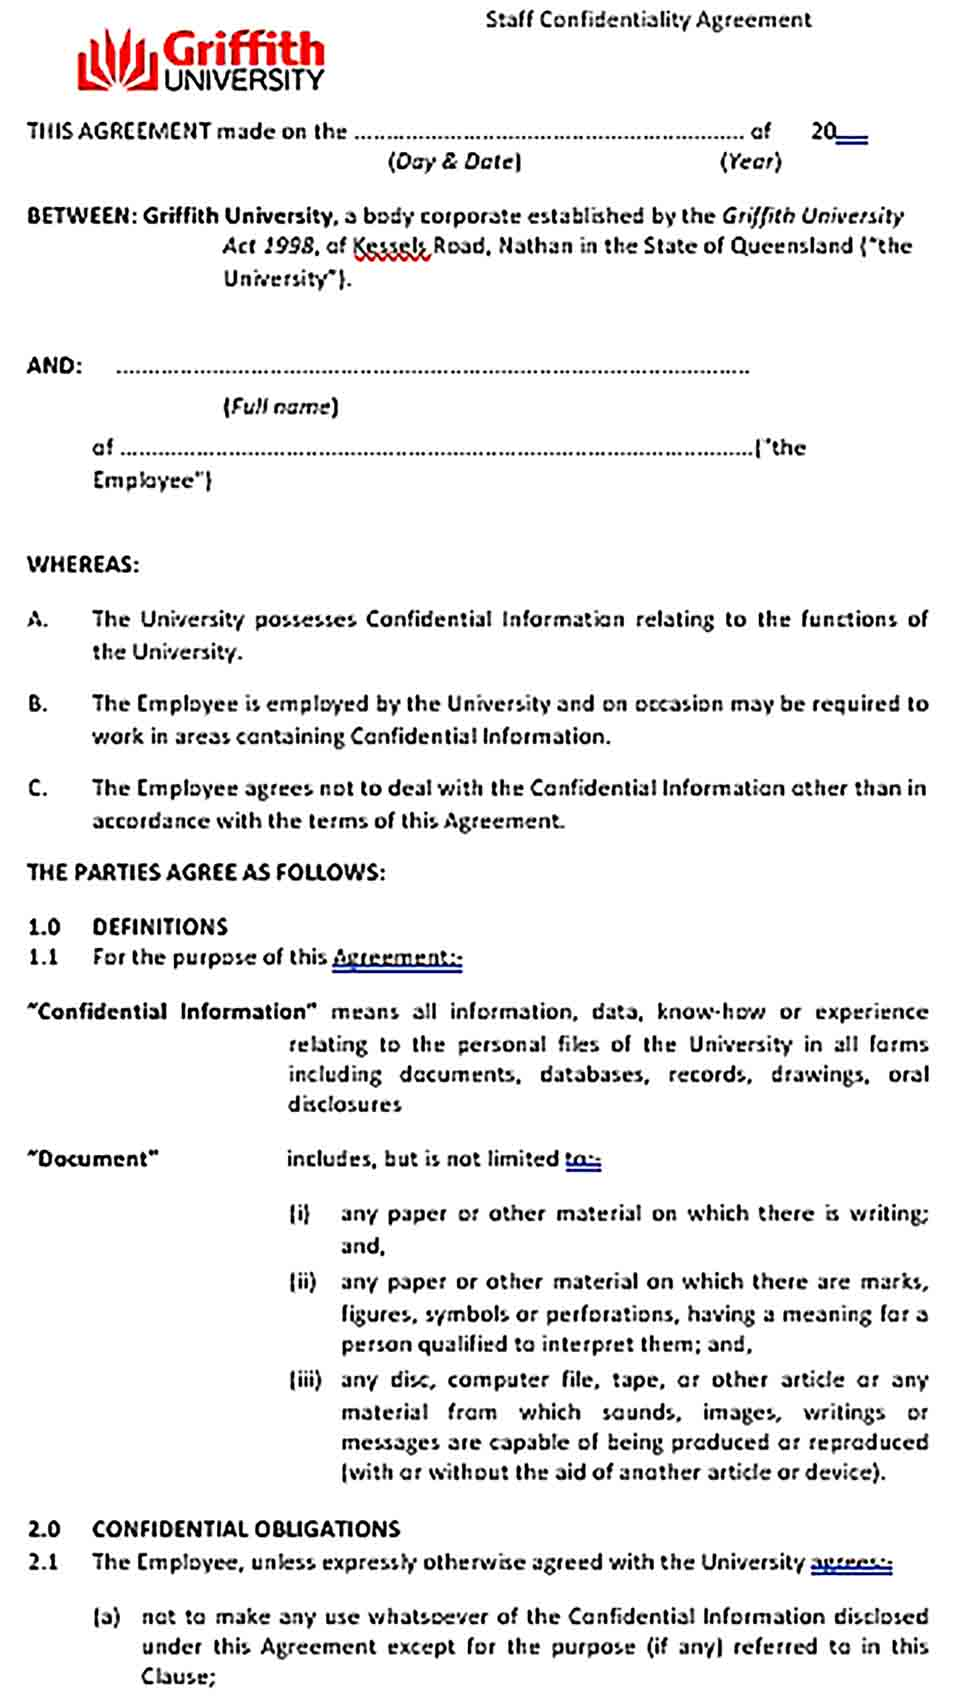 Sample Staff Confidentiality Agreement